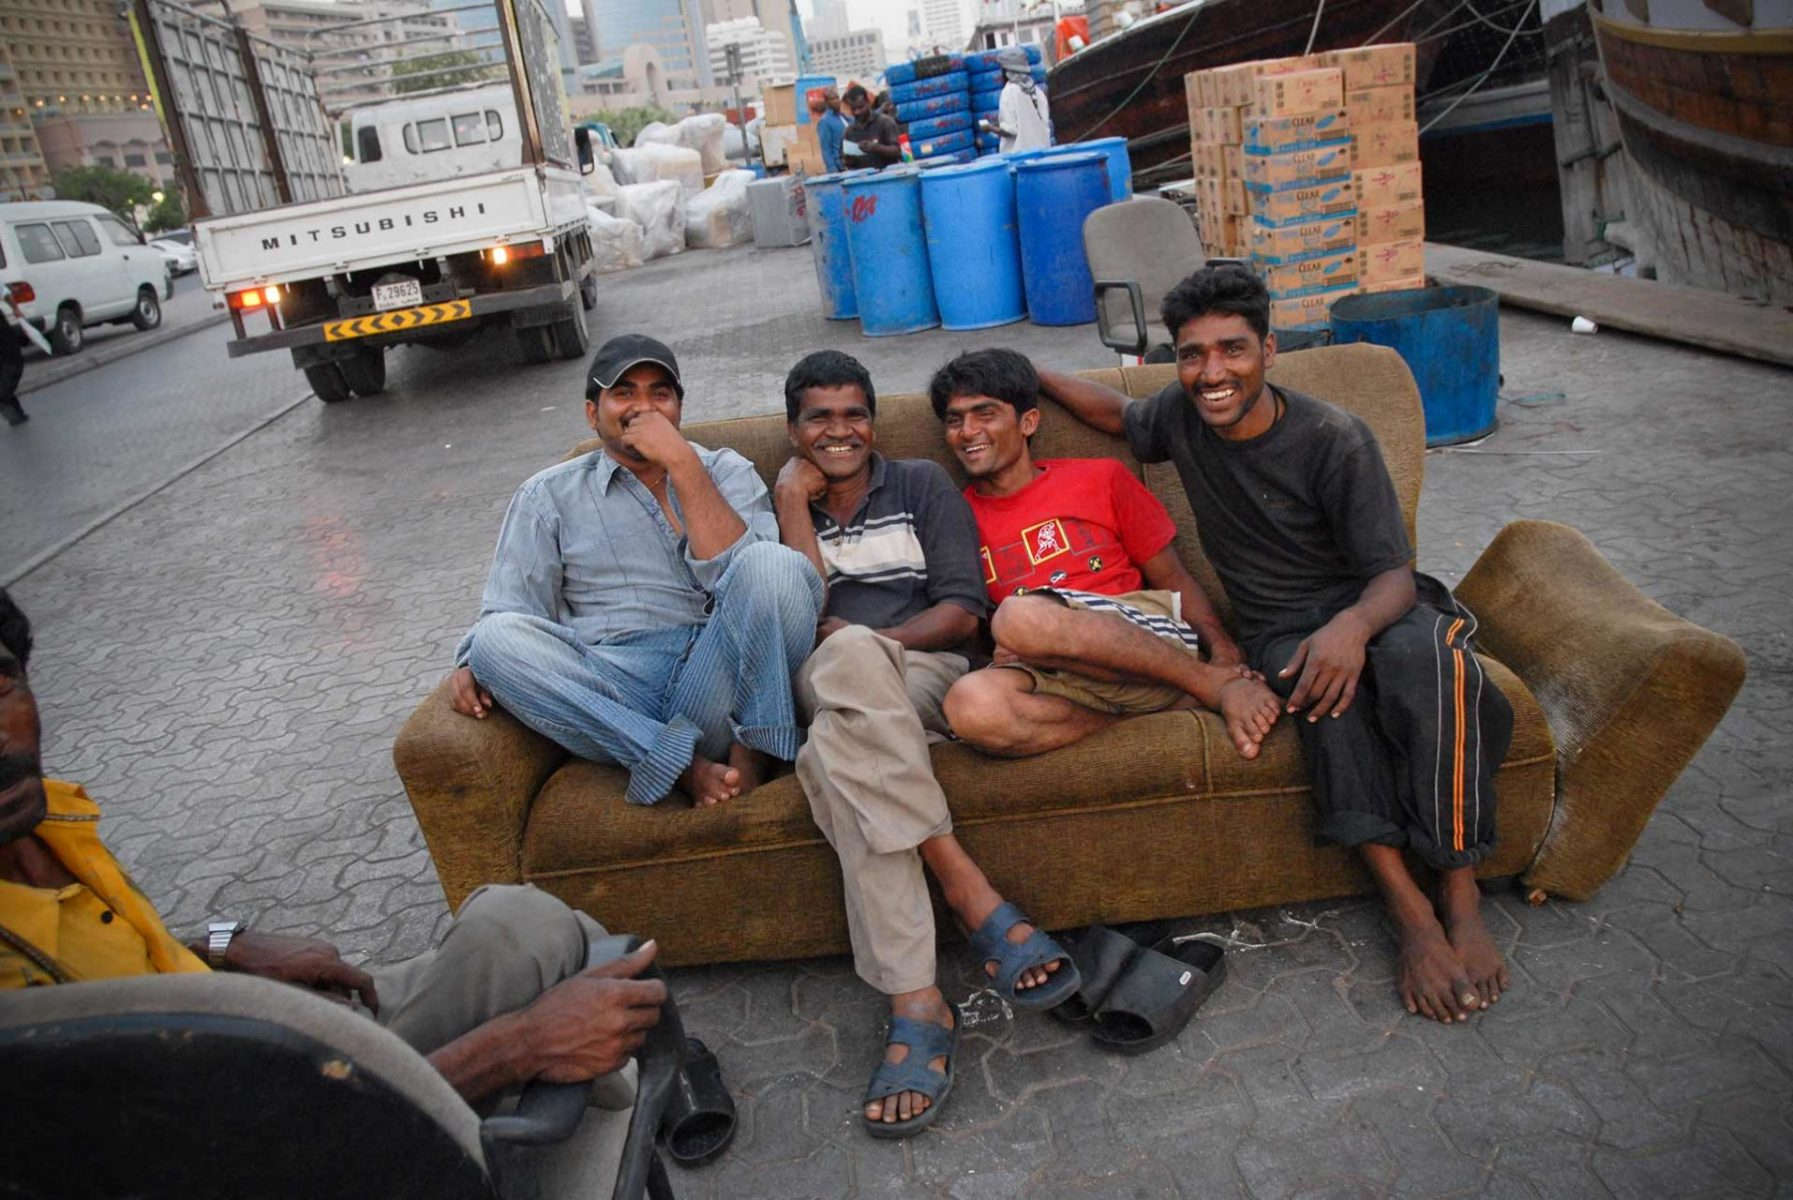 Workers taking a rest. United Arab Emirates.